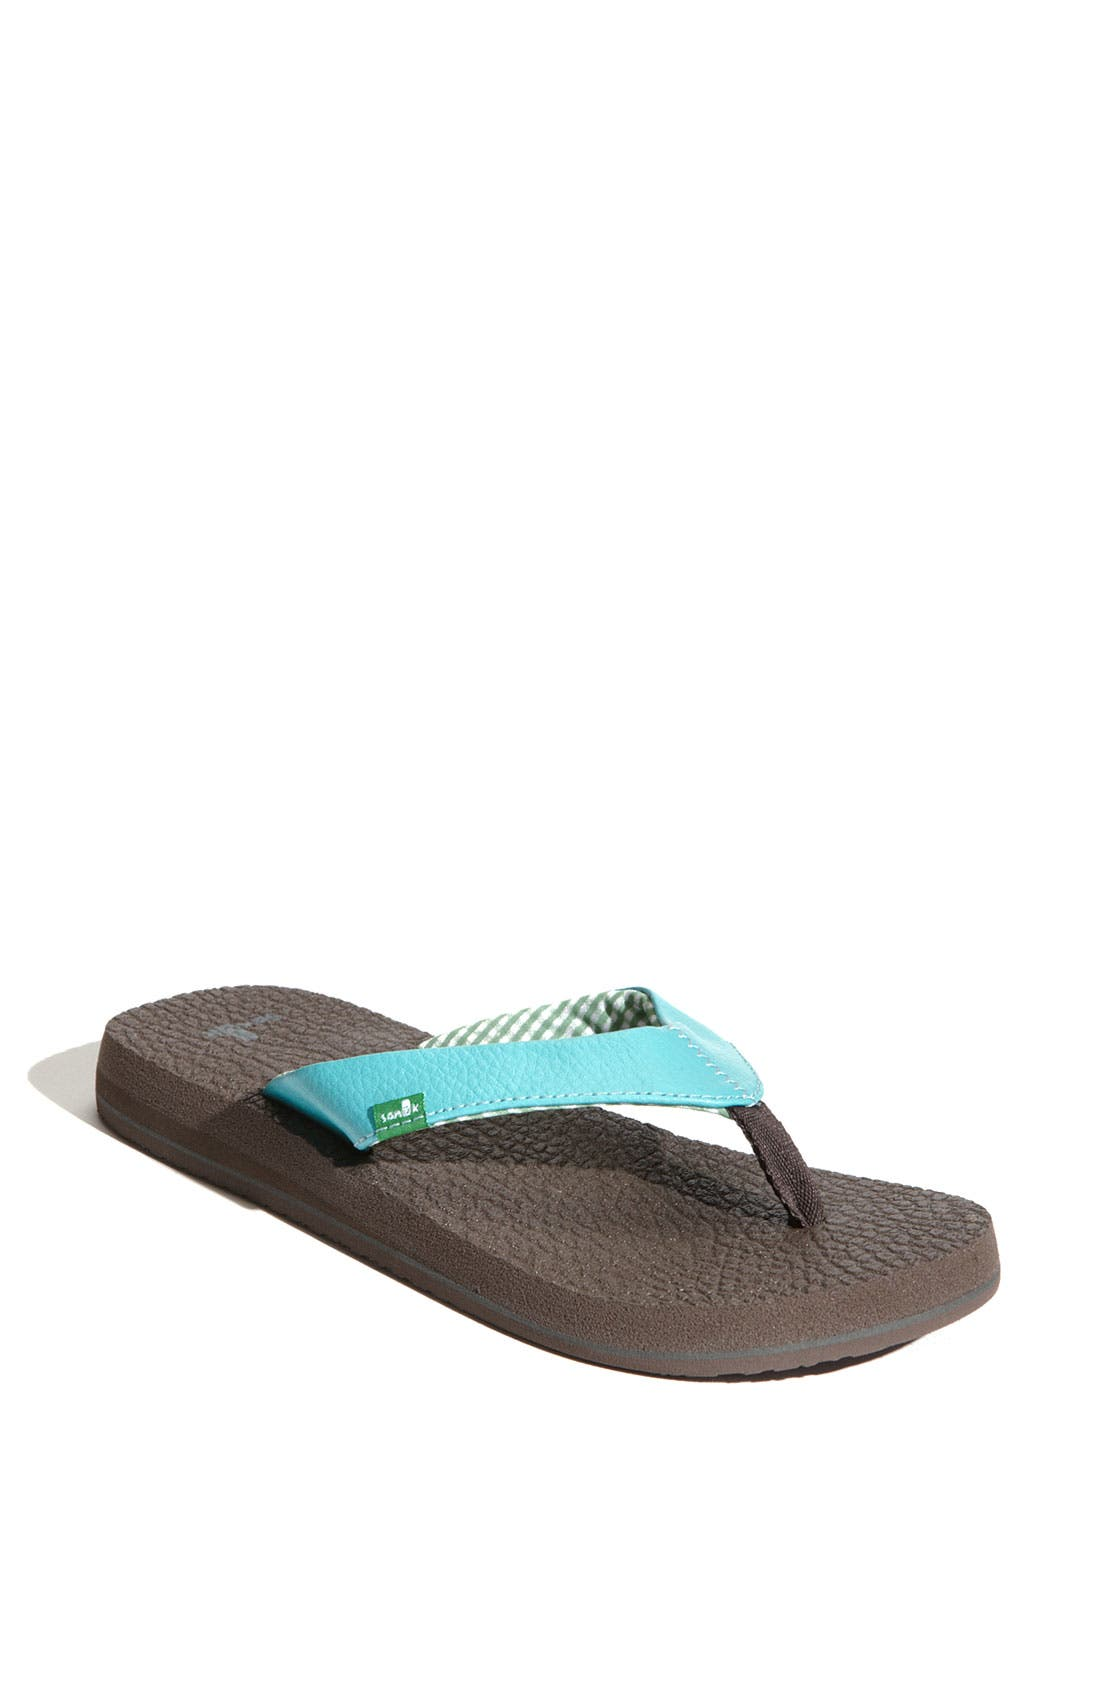 Alternate Image 1 Selected - Sanuk 'Yoga Mat' Flip Flop (Women)